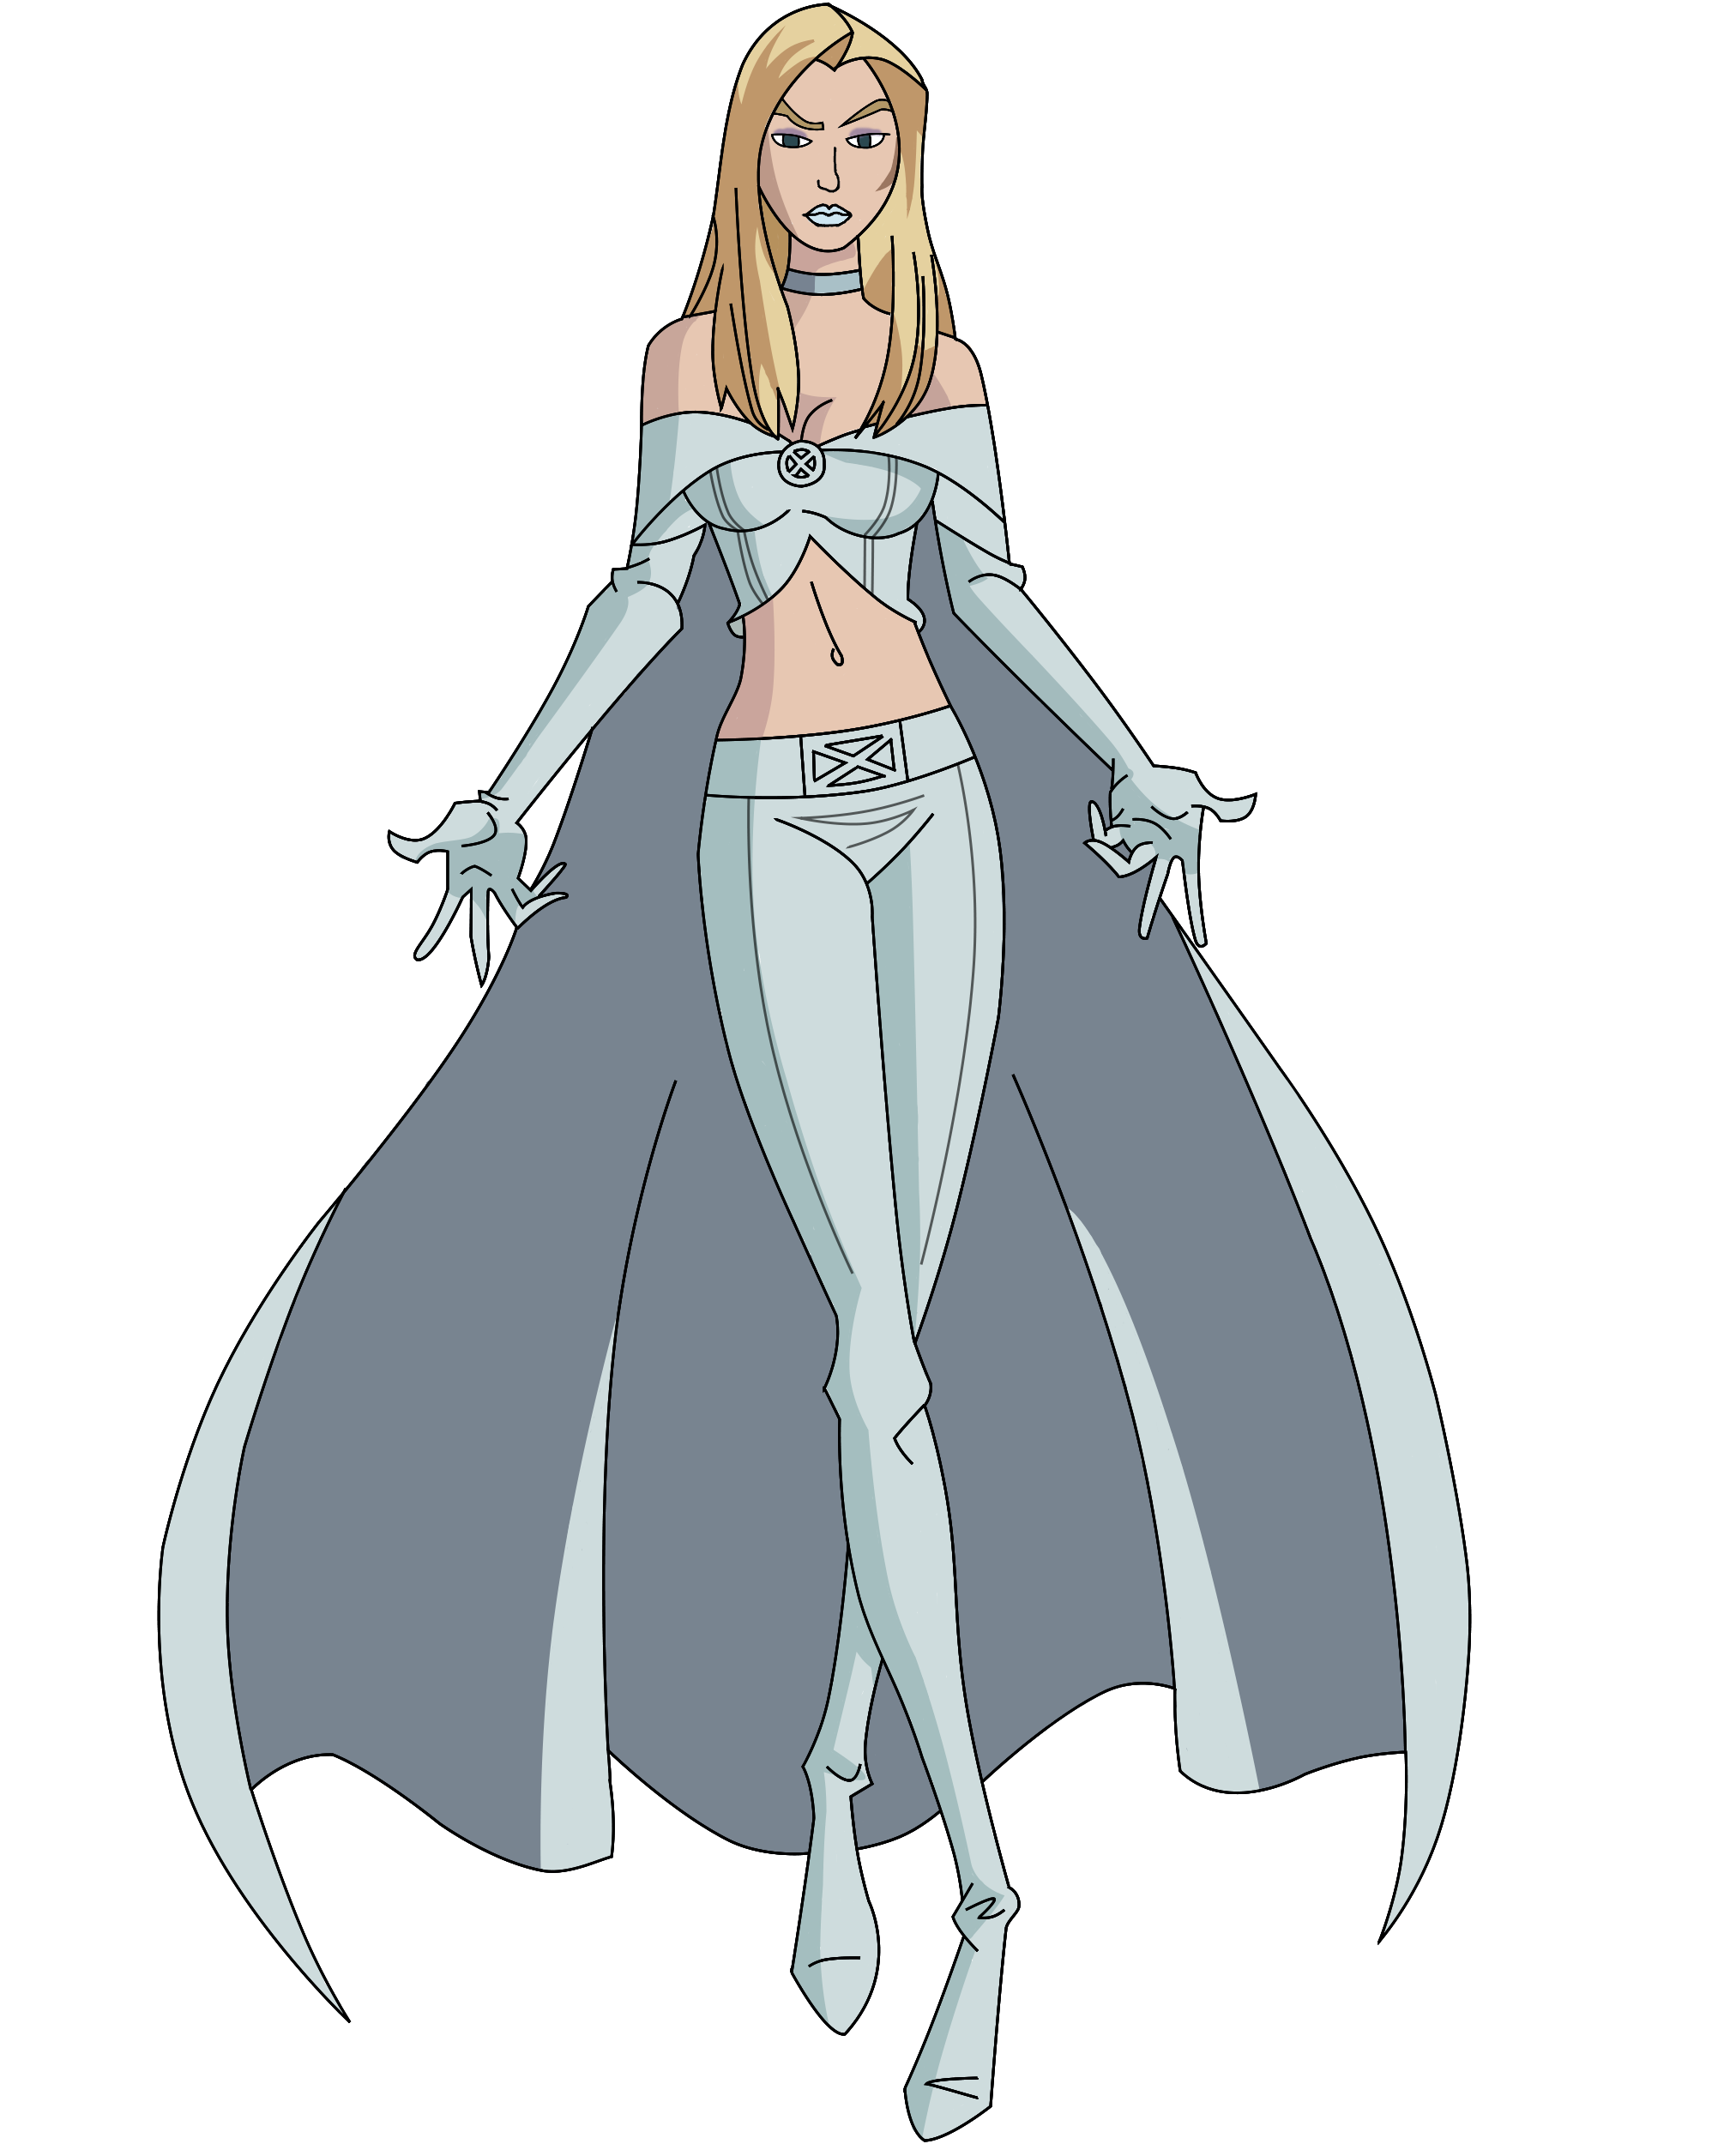 Frost transparent drawing. Image emma by trdaz